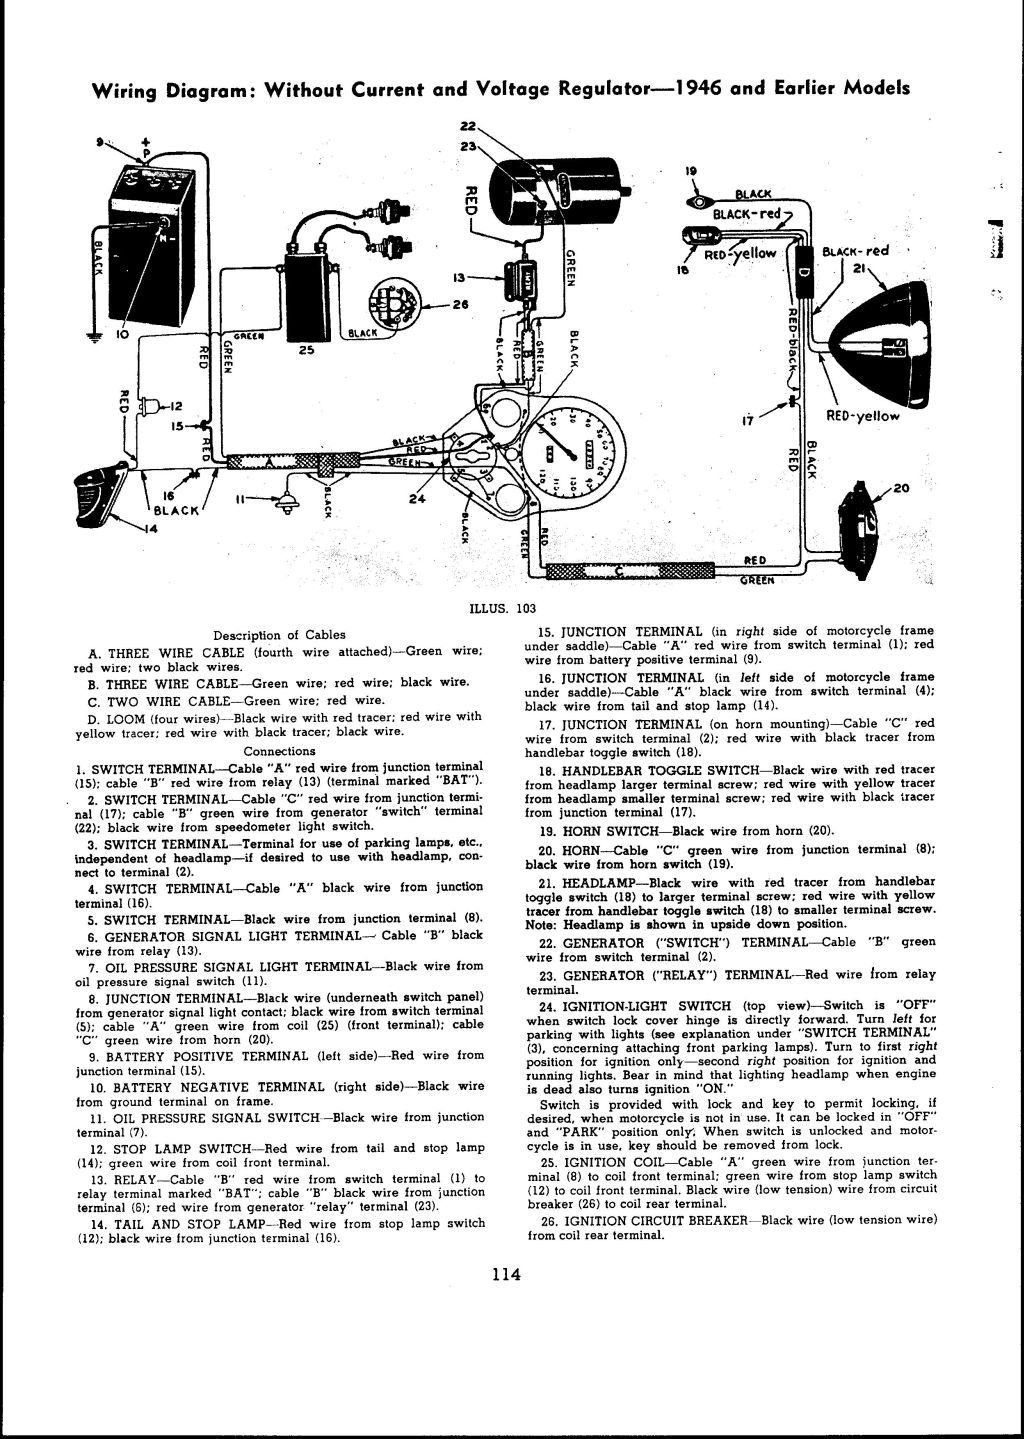 1946 And Earlier Models Wiring Diagram: With Current And Voltage - Voltage Regulator Wiring Diagram